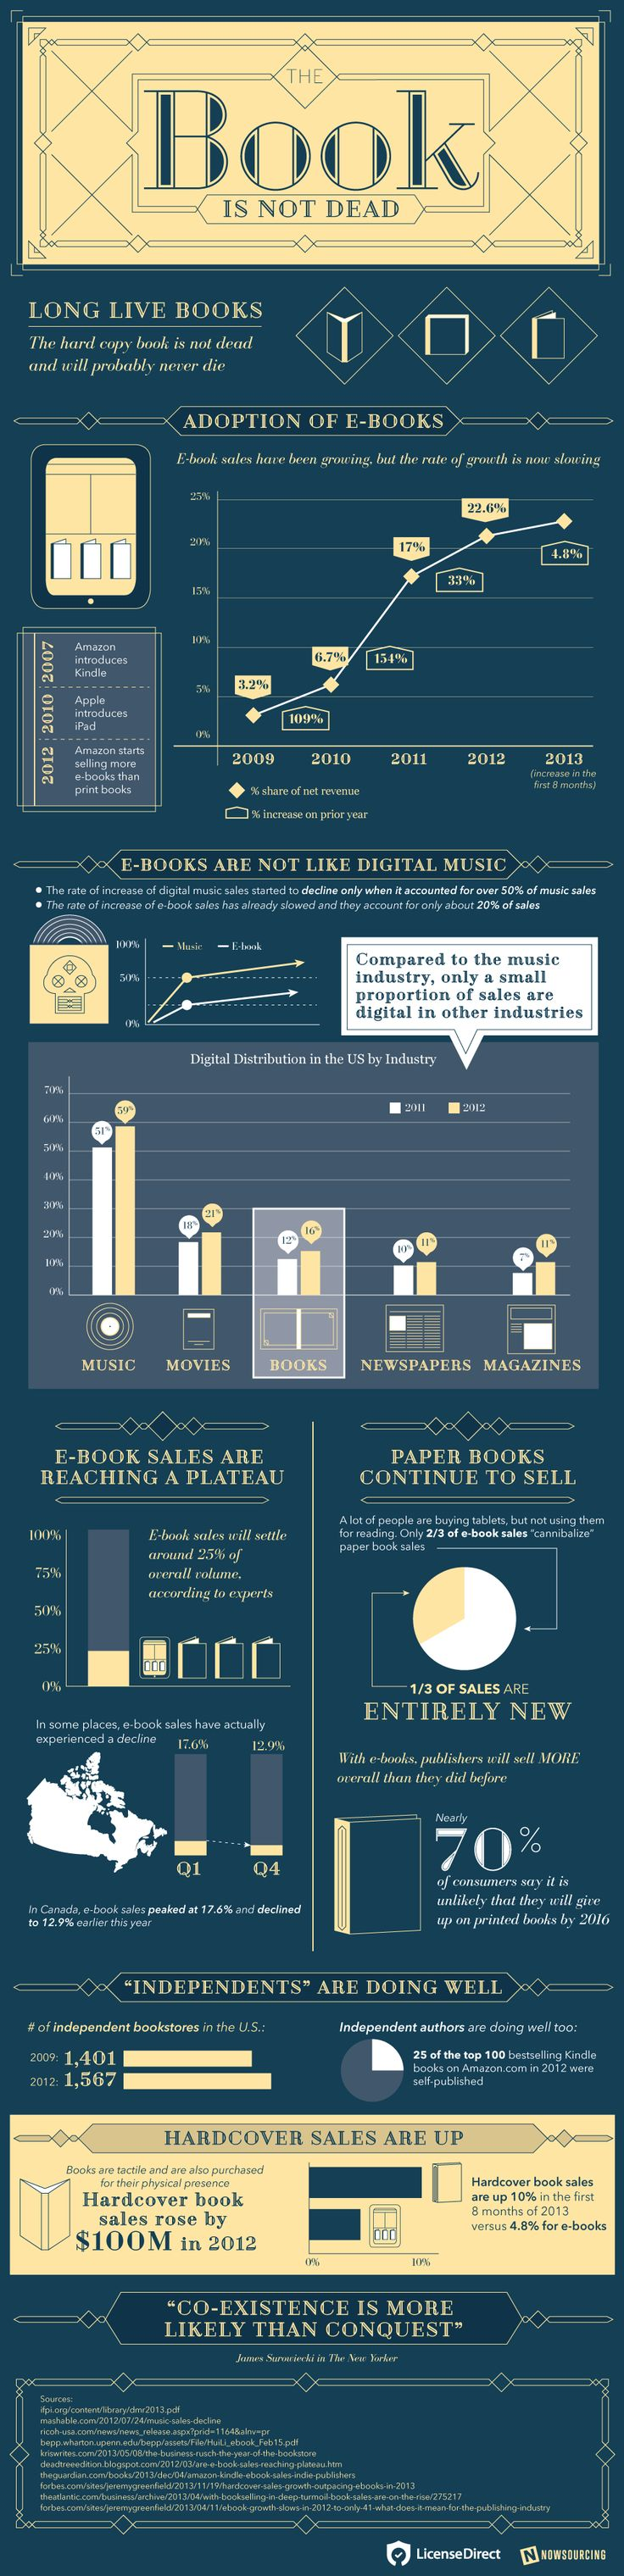 160 Best Images About Libraries And Booklovers On Pinterest  Good Books,  Book Lovers And Libraries